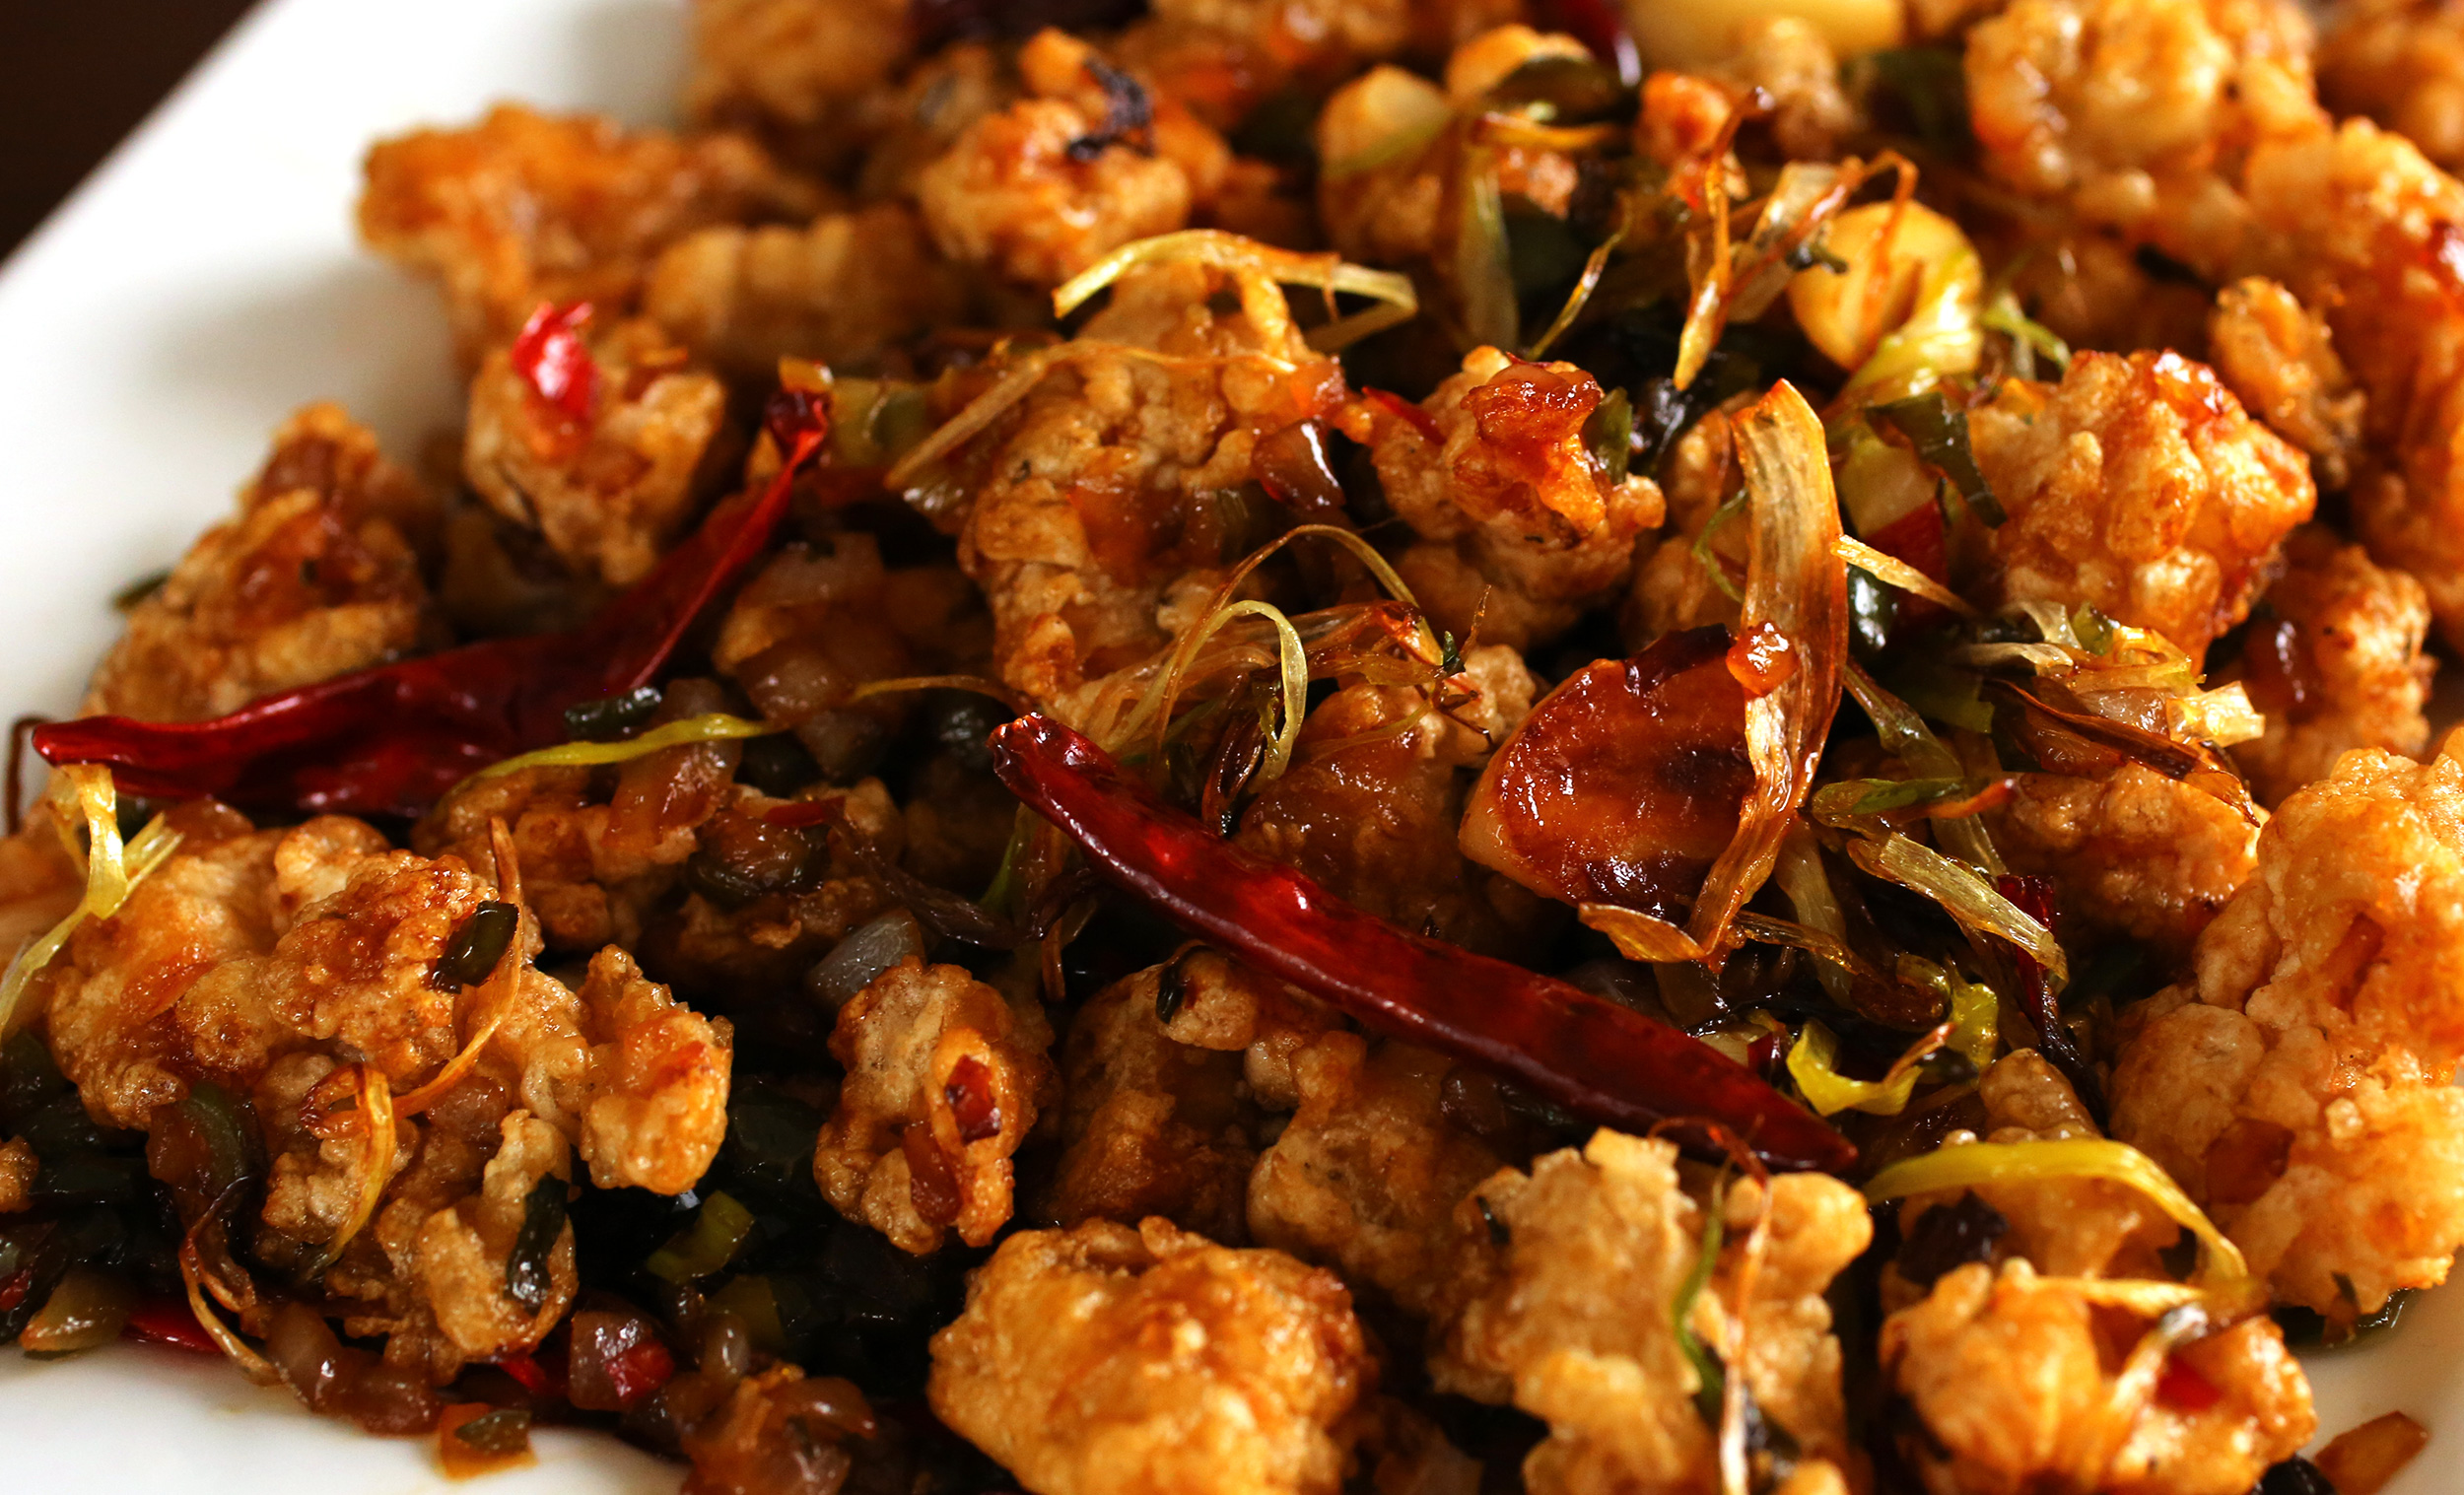 Spicy garlic fried chicken kkanpunggi recipe maangchi kkanpunggi forumfinder Image collections